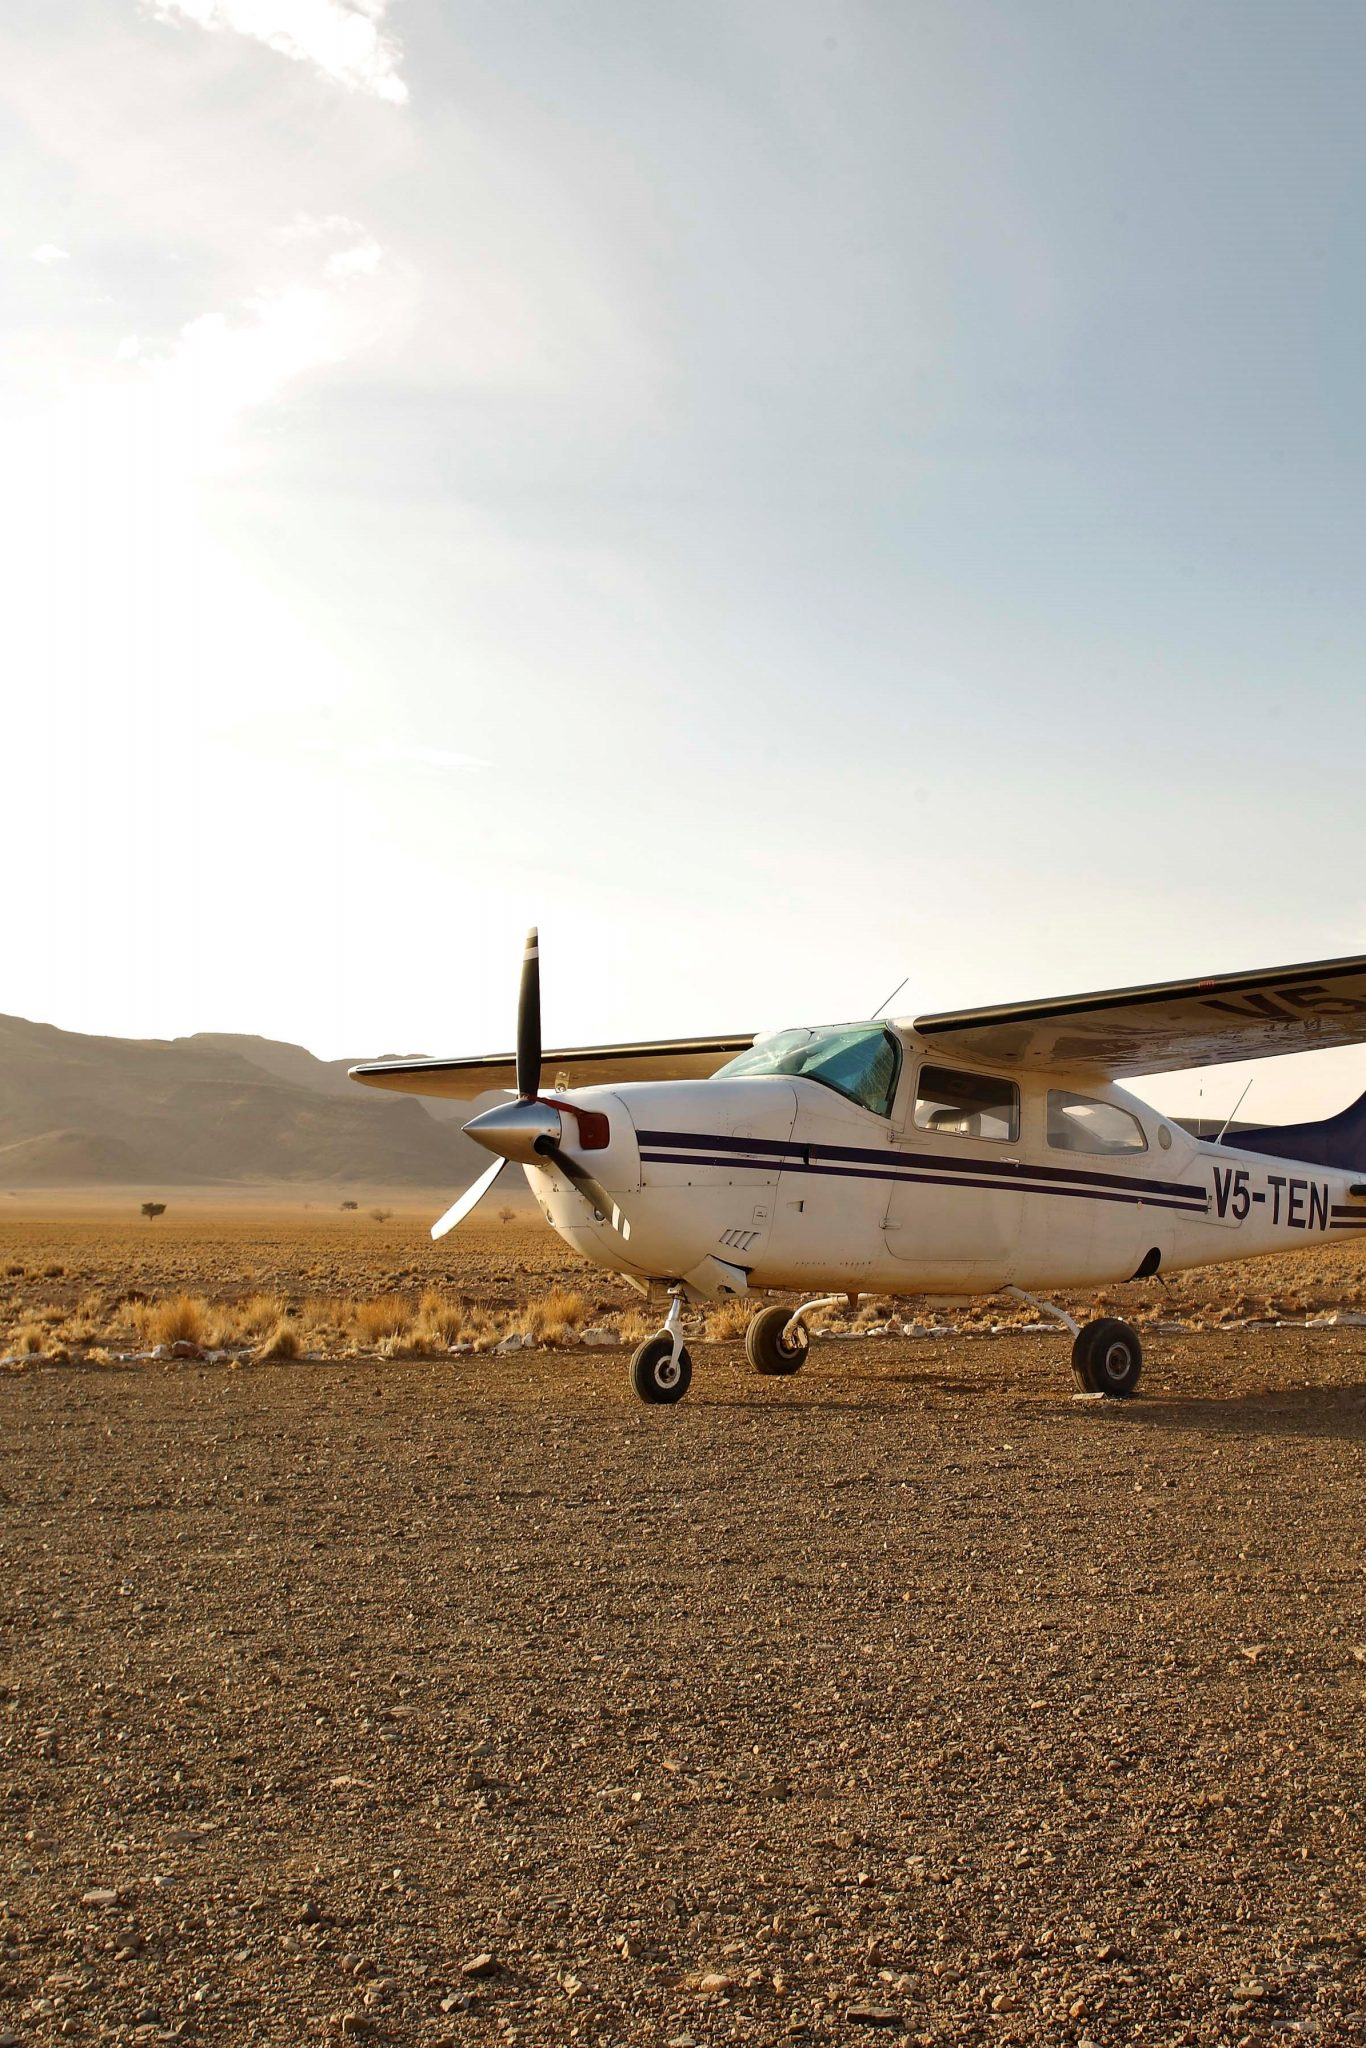 Fly - in Namibia2